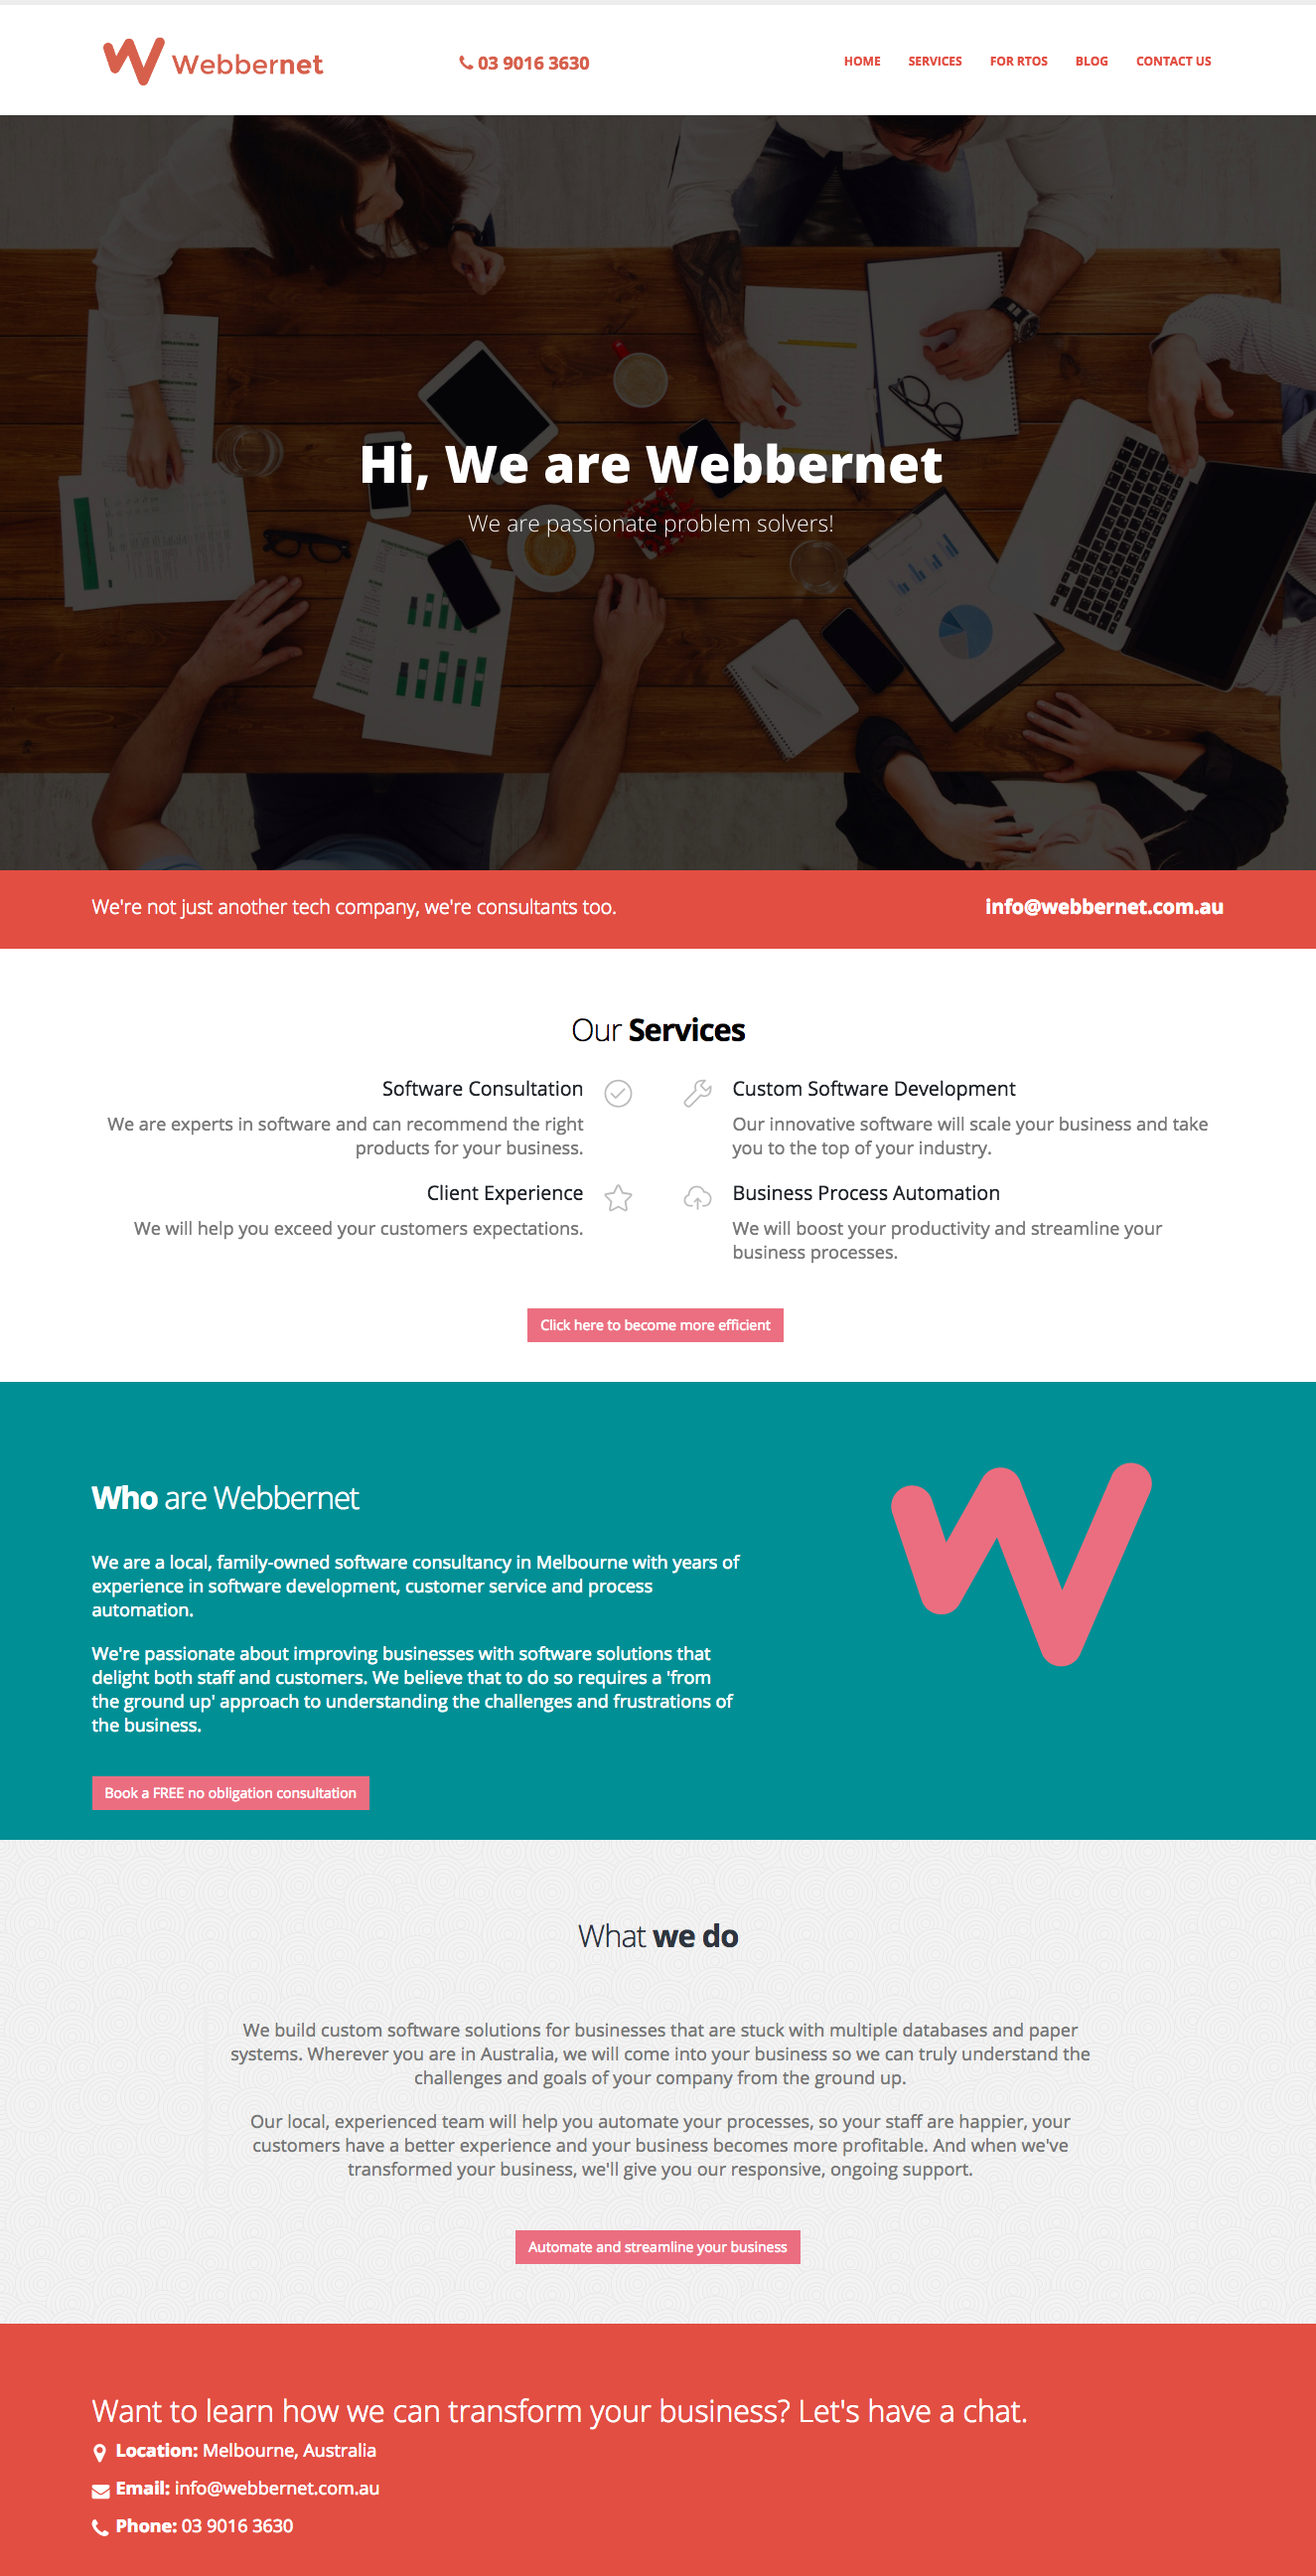 Landing page copywriting services for tech startup company